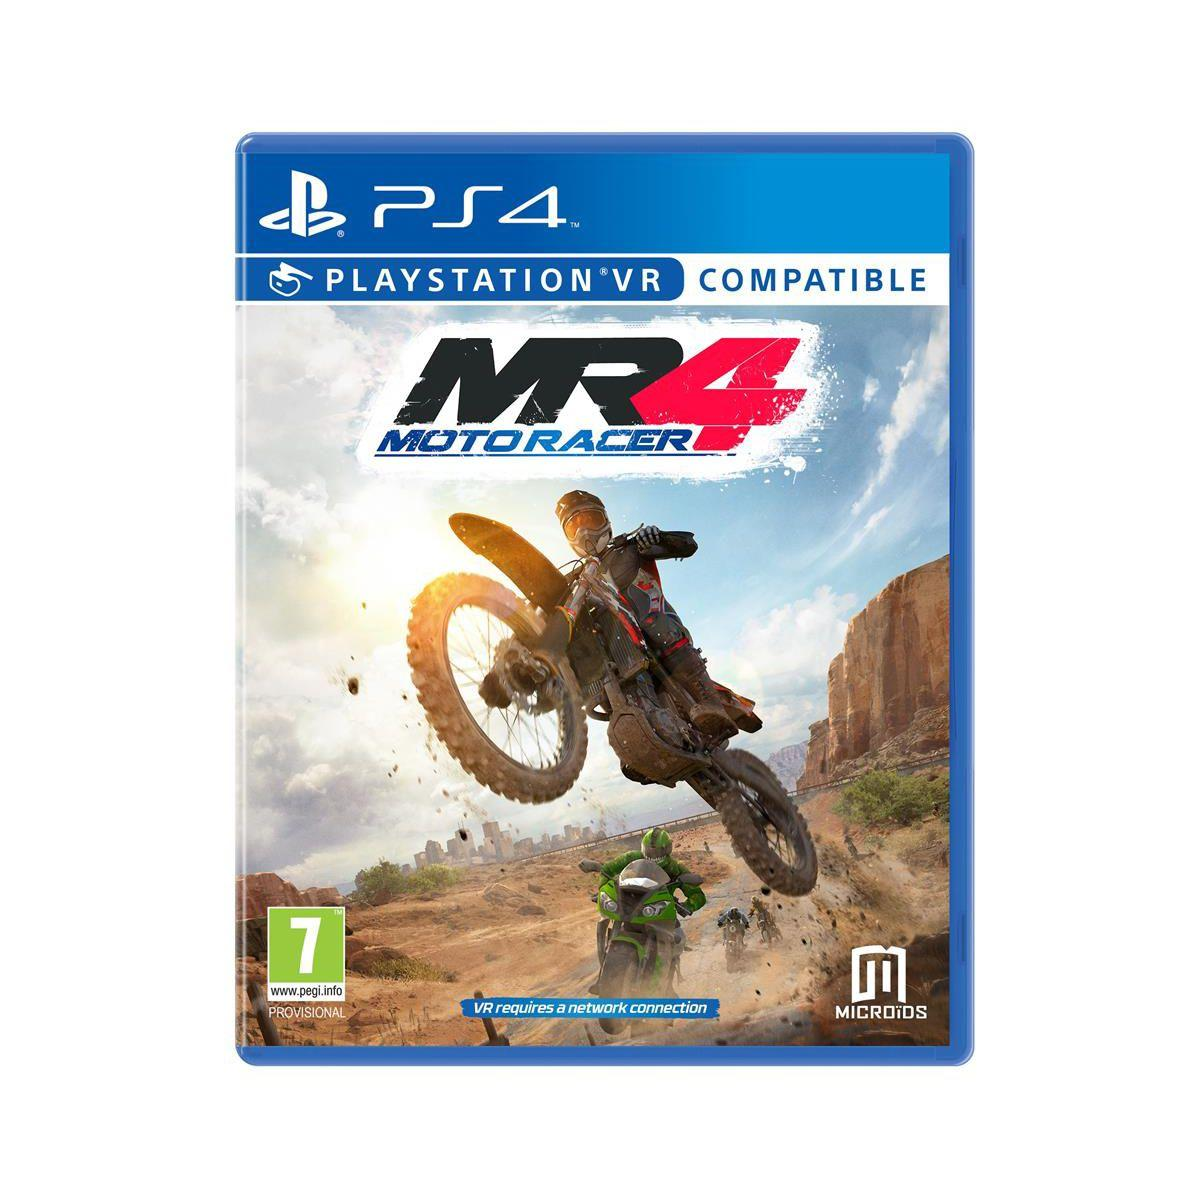 Jeu ps4 just for games motor racer 4 - 2% de remise immédiate avec le code : cool2 (photo)